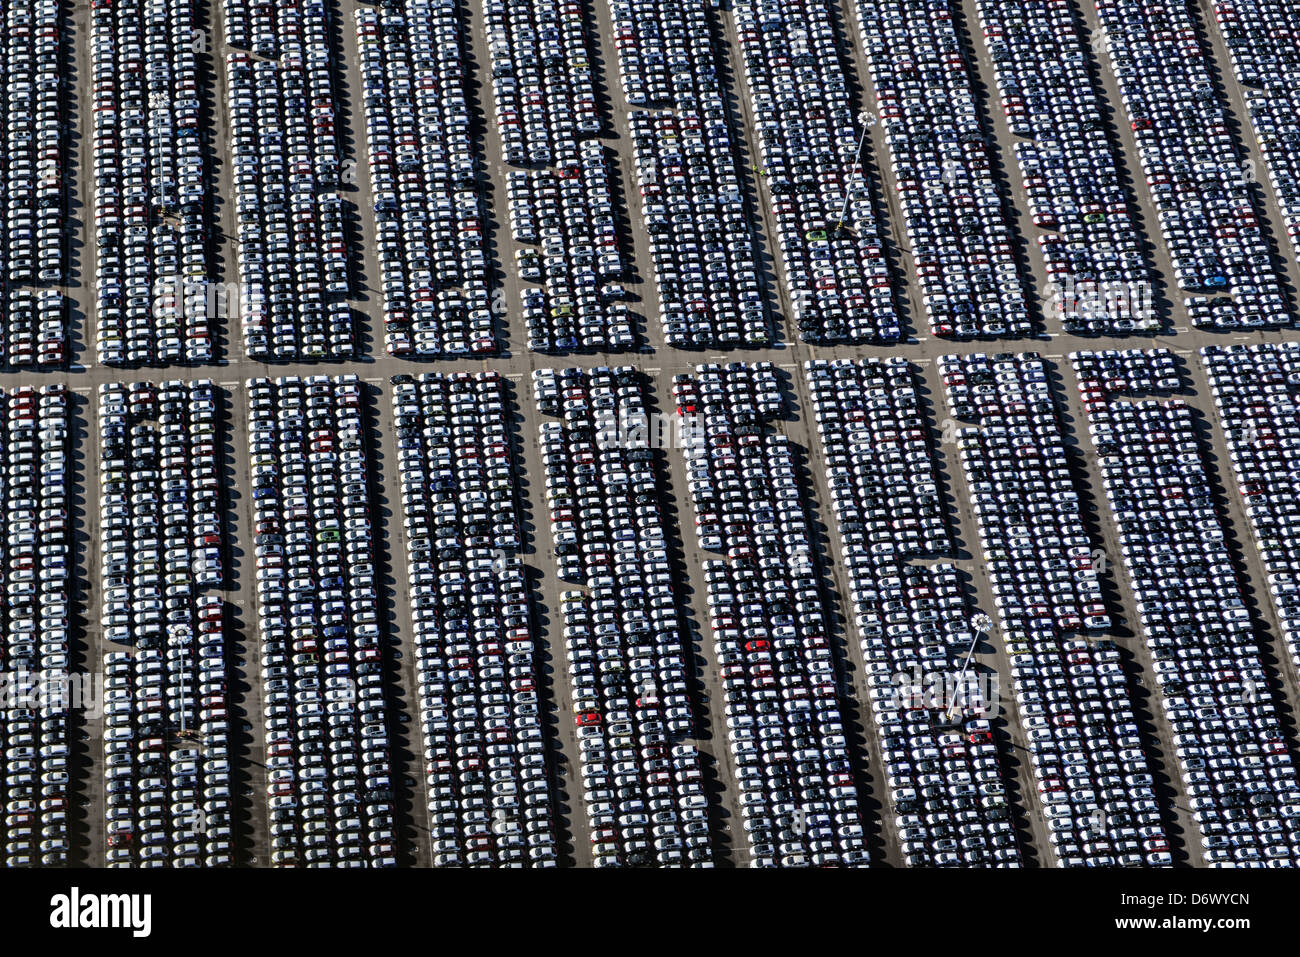 Aerial photograph of rows of cars at the Port of Bristol - Stock Image